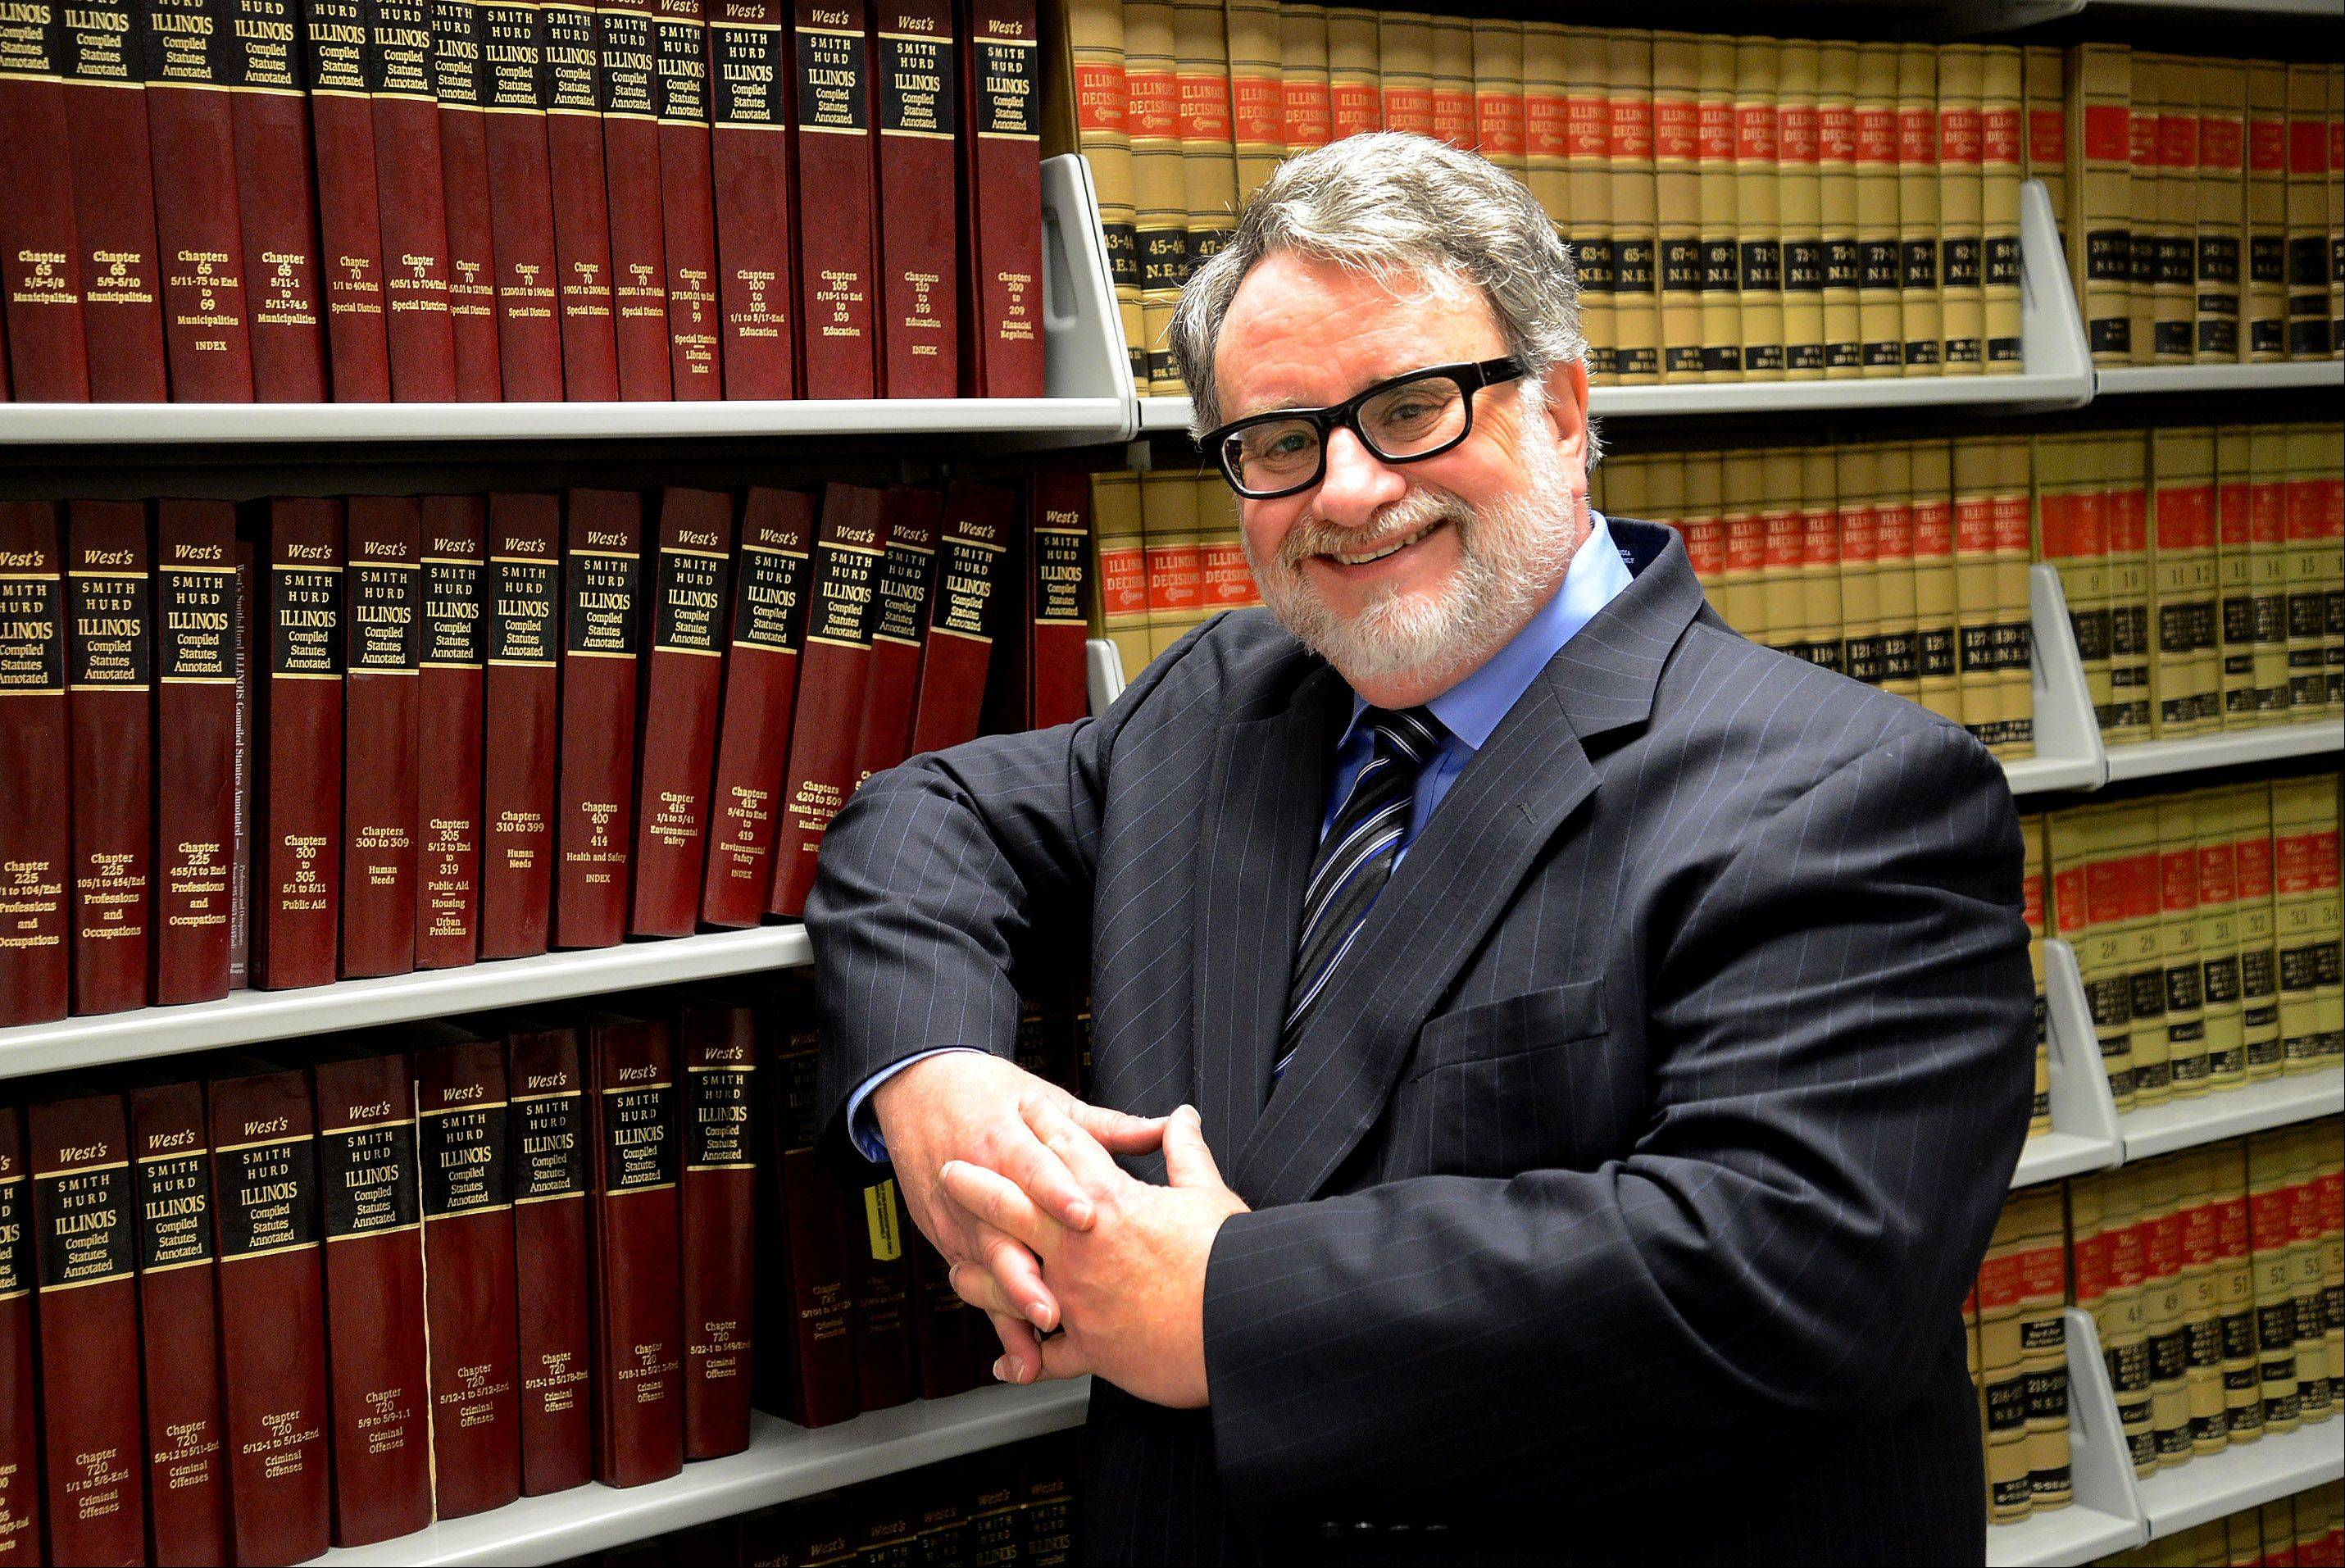 Cook County Assistant Public Defender Scott Slonim of Buffalo Grove is retiring after 30 years, most of them at the courthouse in Rolling Meadows.